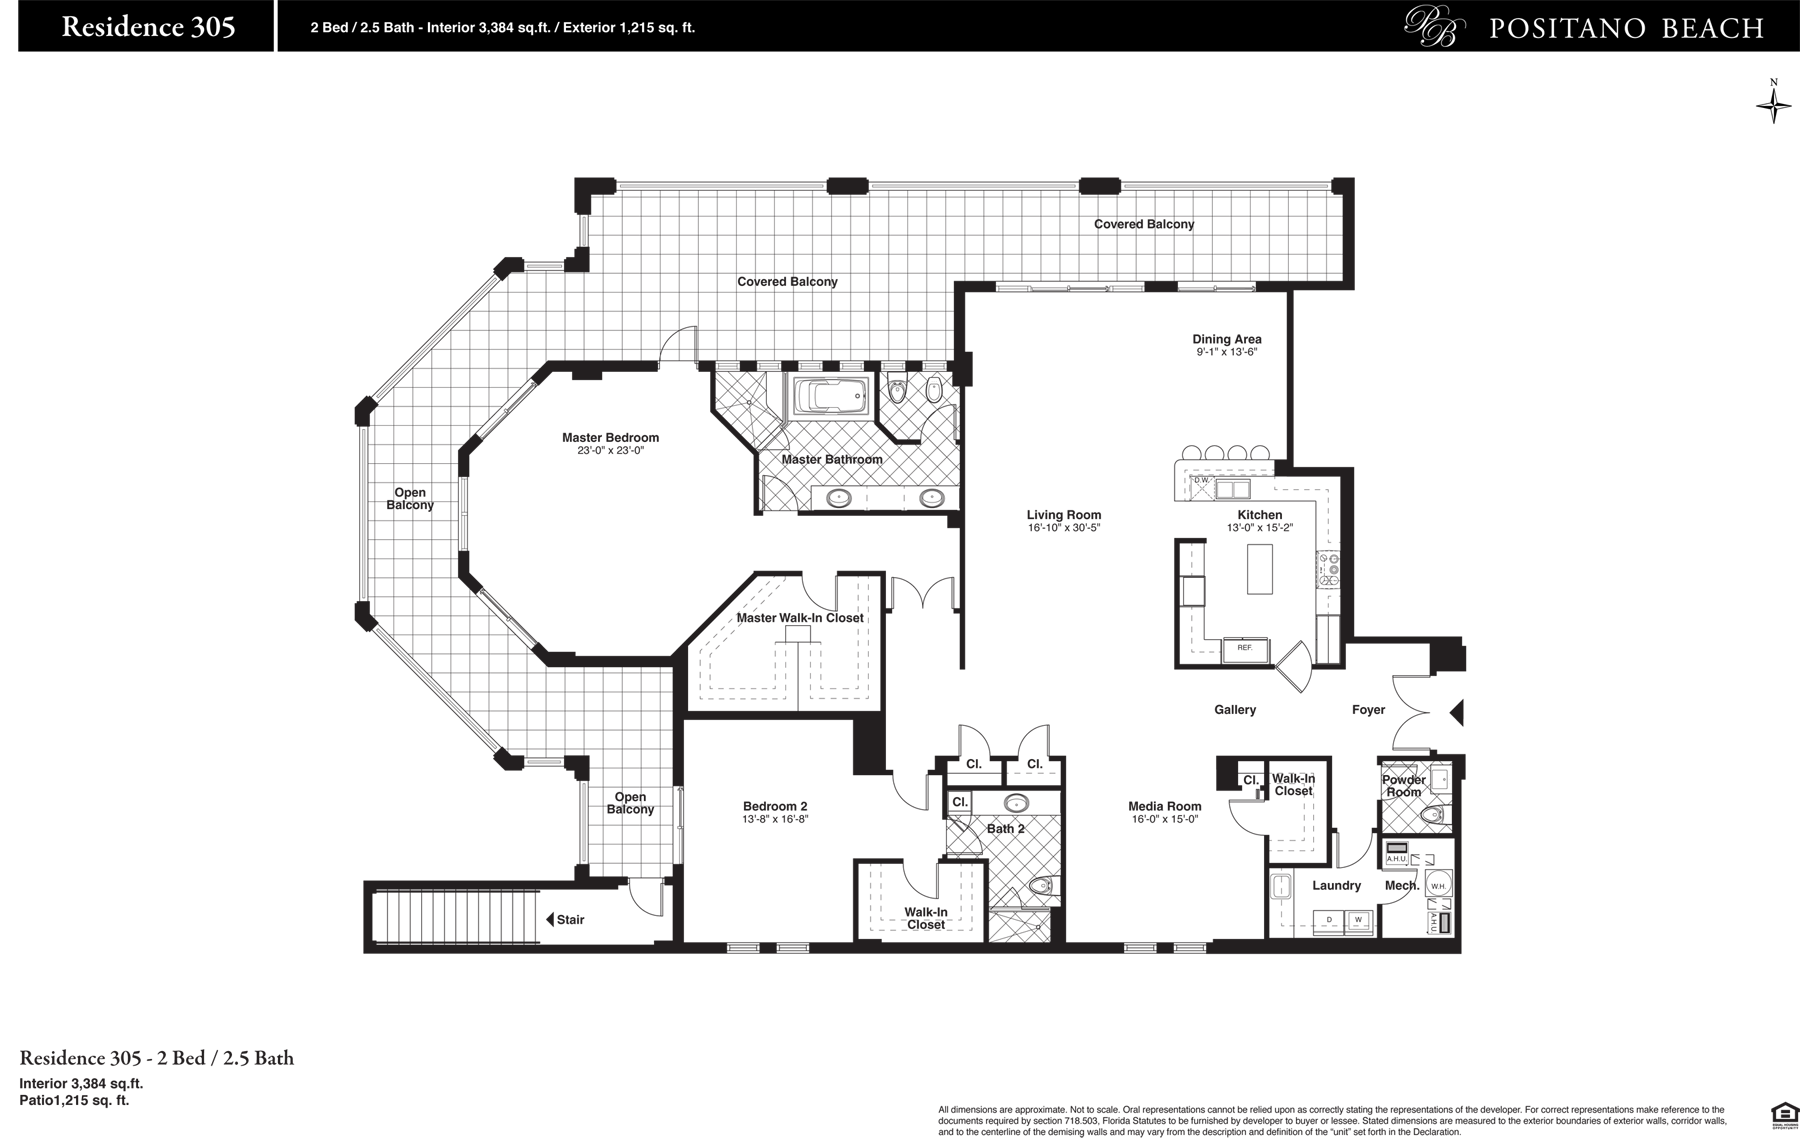 Positano Beach - Floorplan 3